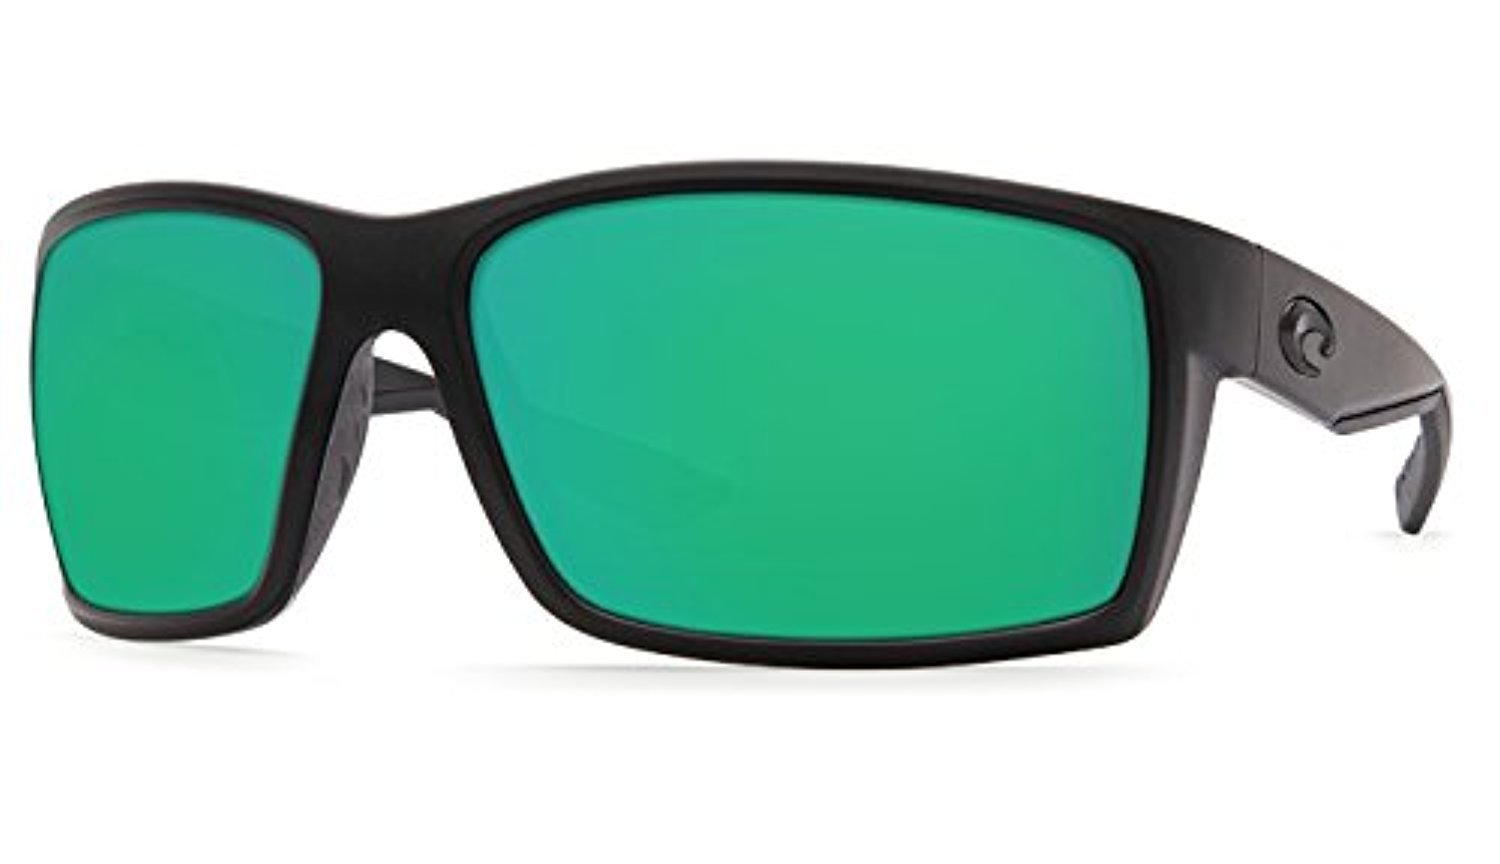 Costa Reefton Sunglasses Blackout / Green Mirror 580G & Cleaning Kit Bundle